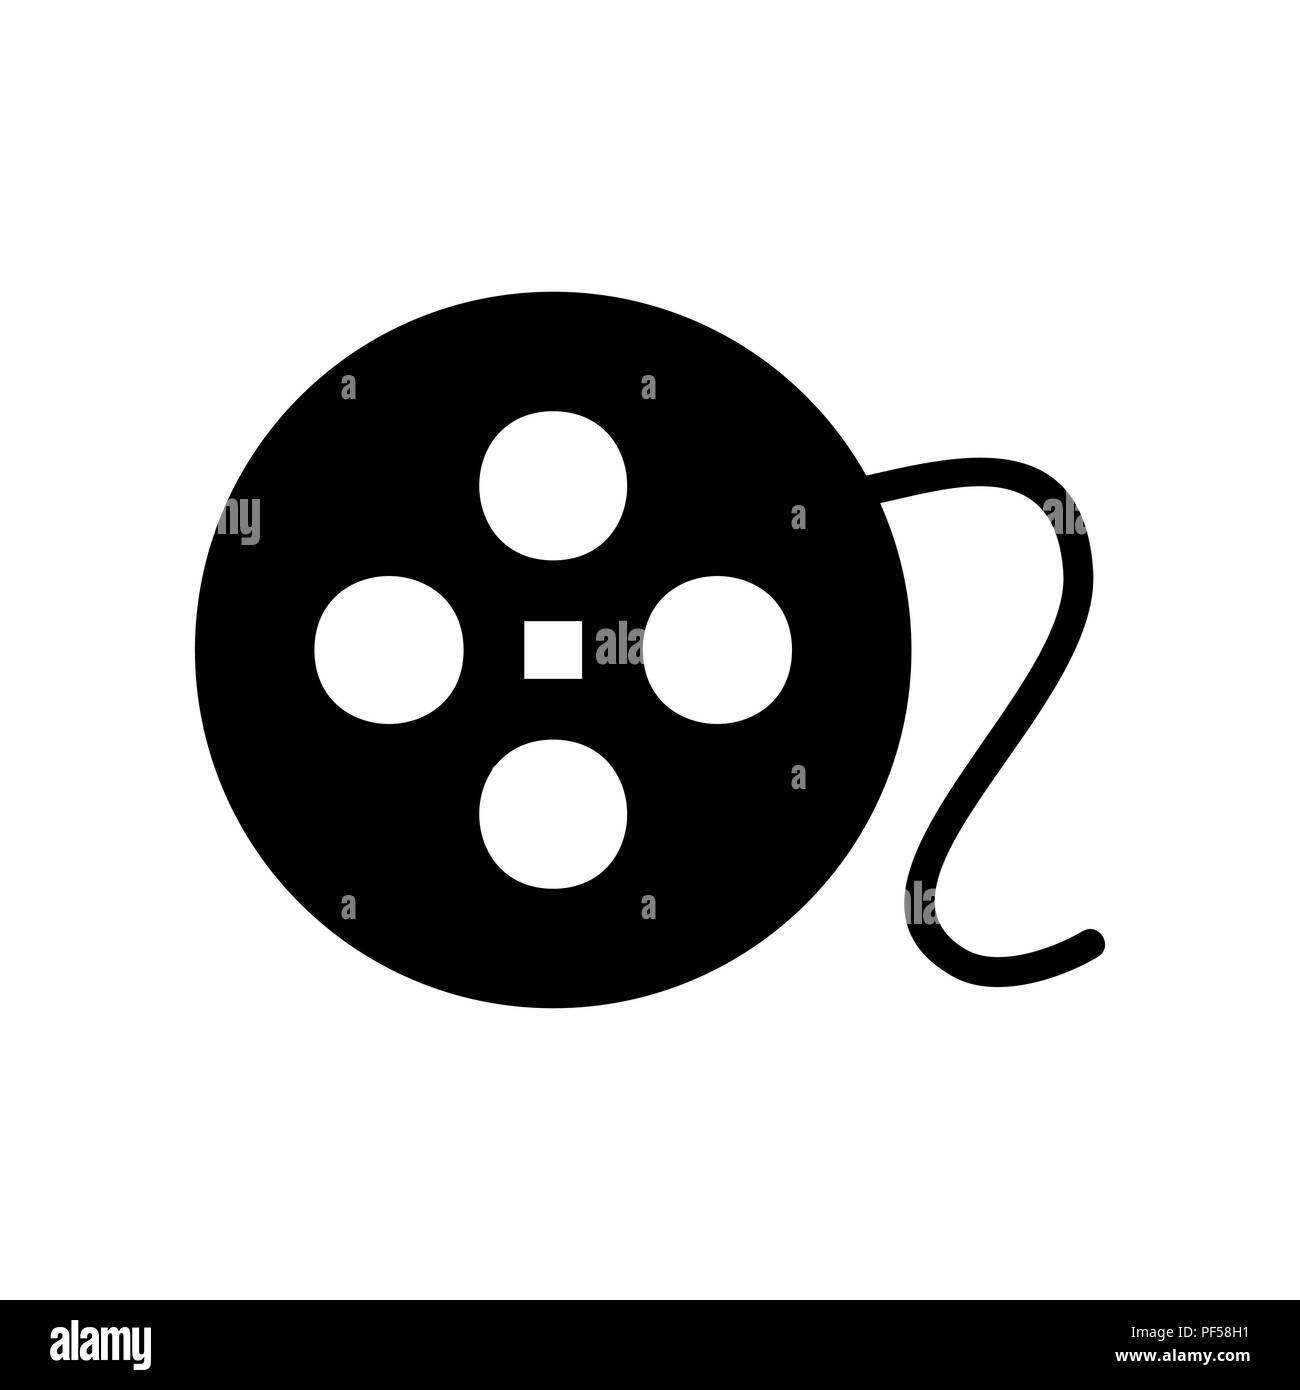 Film circular sign. Vector. Filled black icon at white background. Isolated. Stock Vector